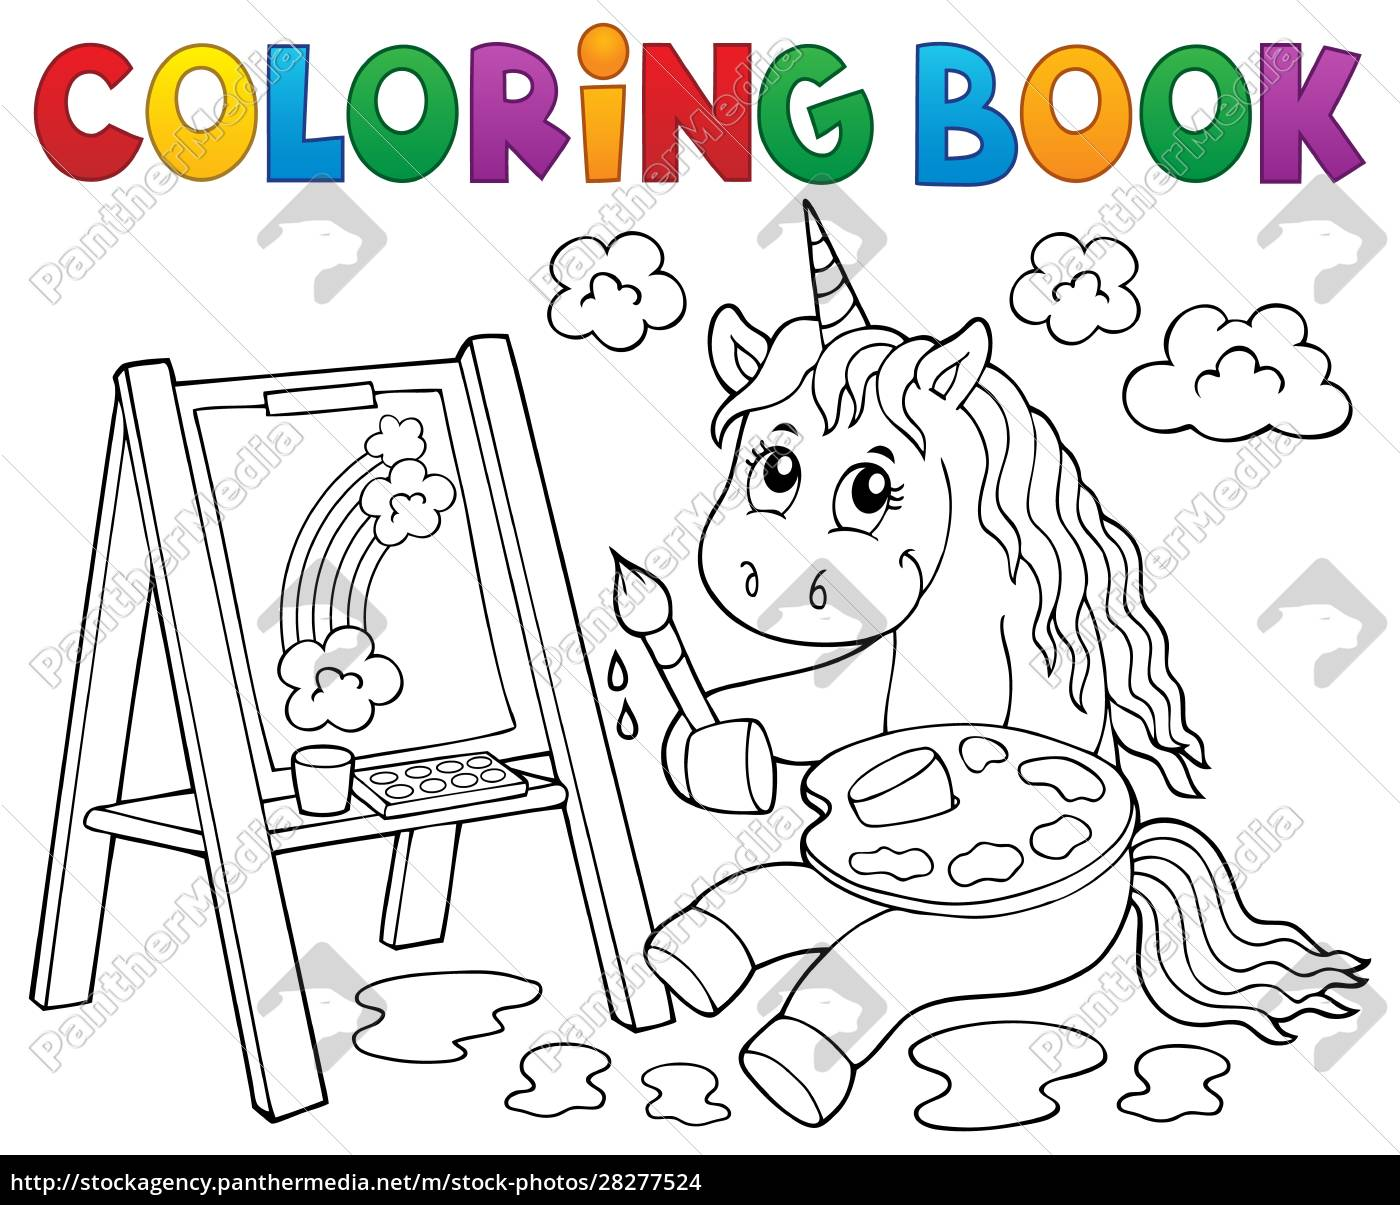 coloring, book, painting, unicorn, theme, 2 - 28277524